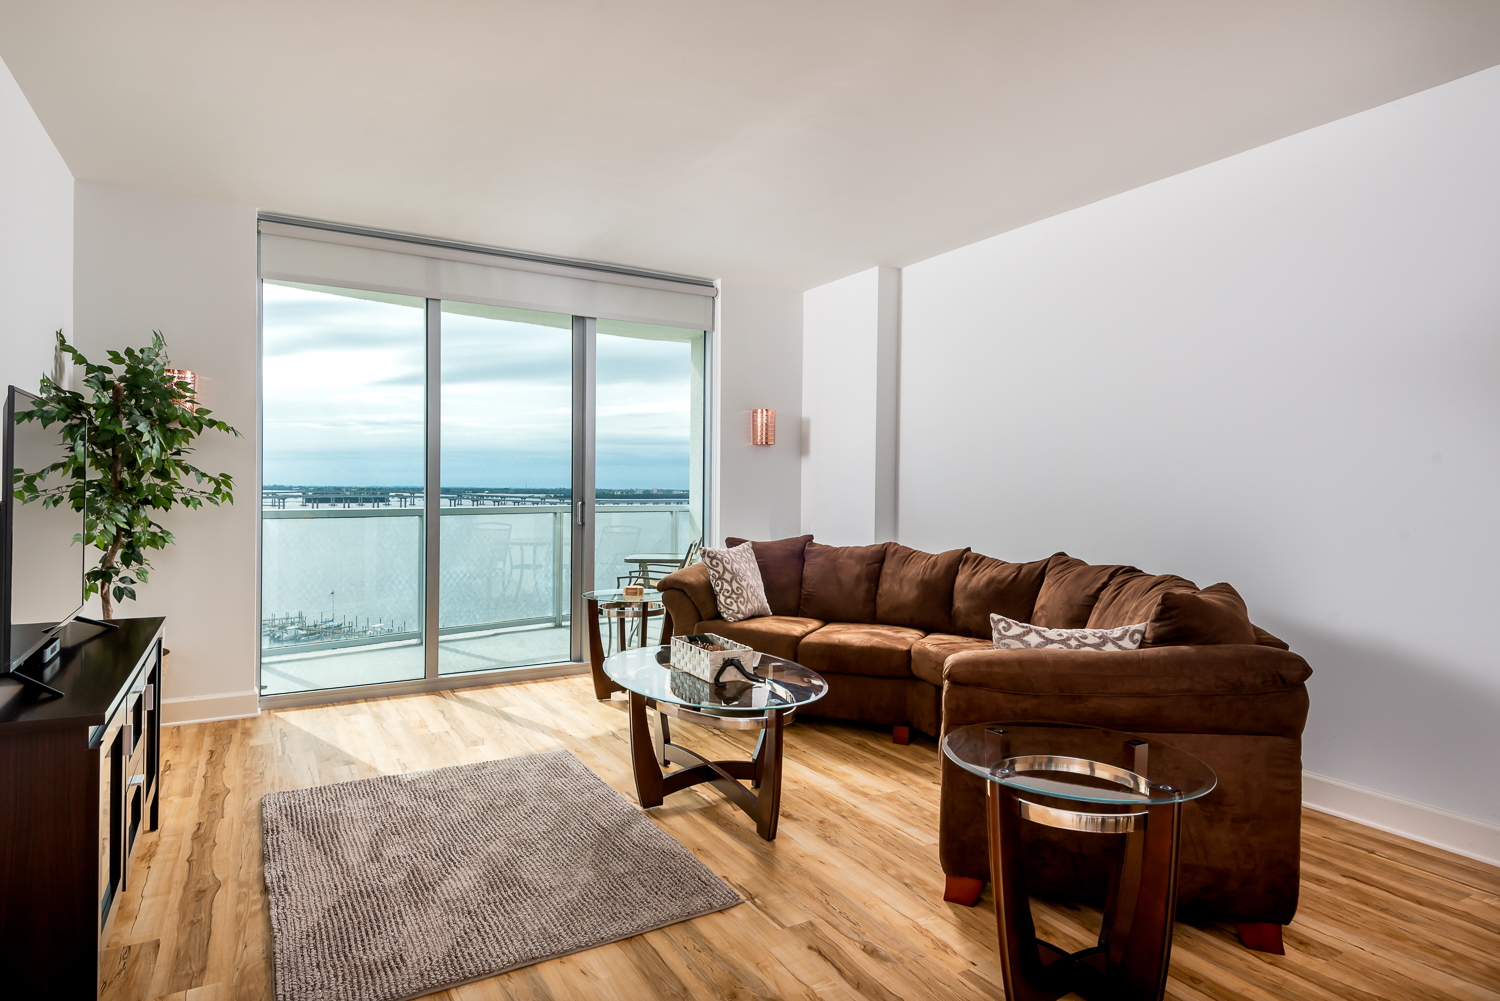 Fort-myers-fl-river-condo-oasis-living-room